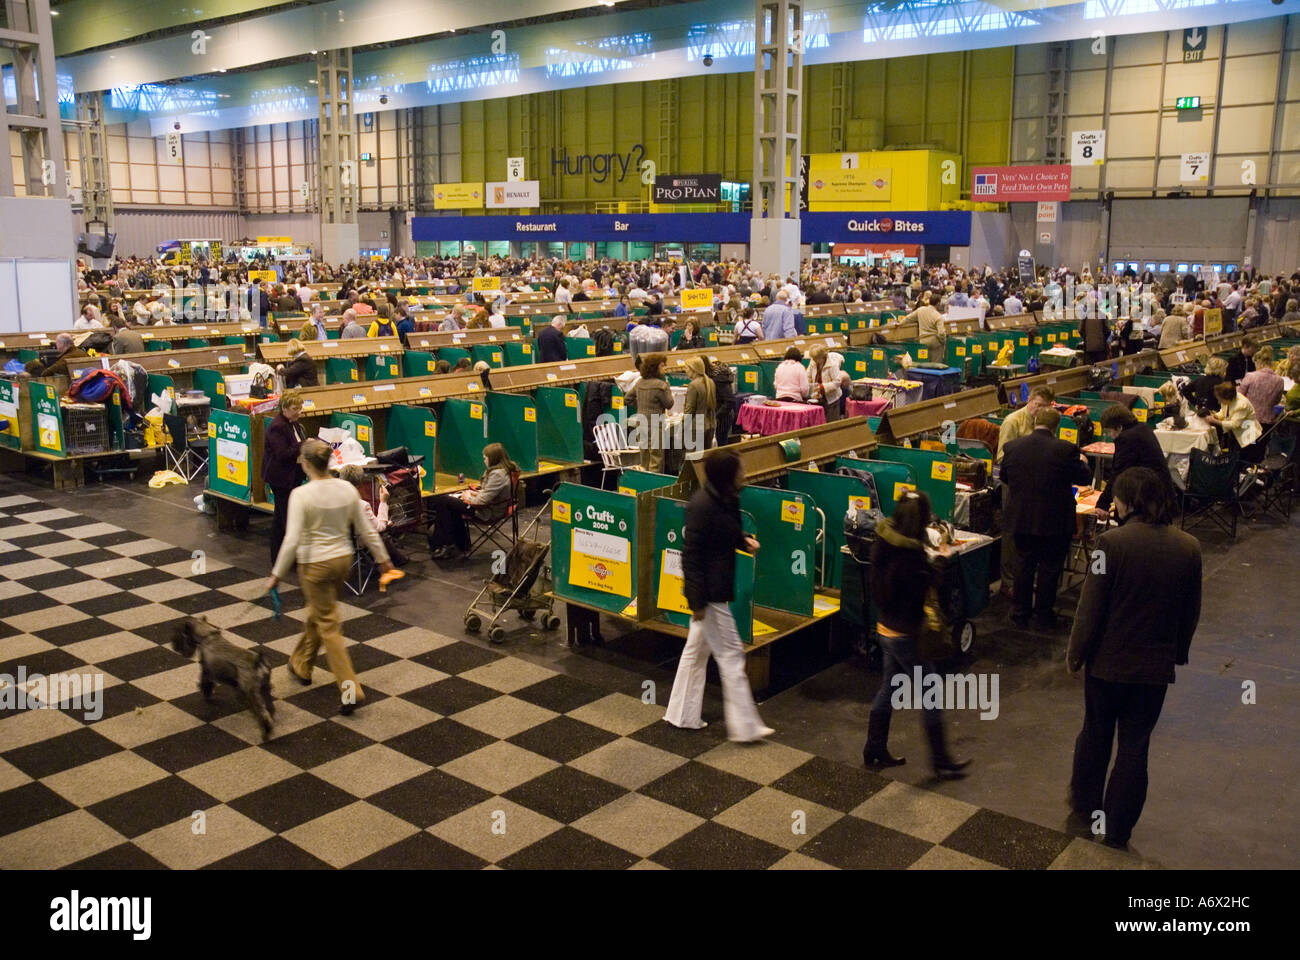 Crufts at the NEC - Stock Image